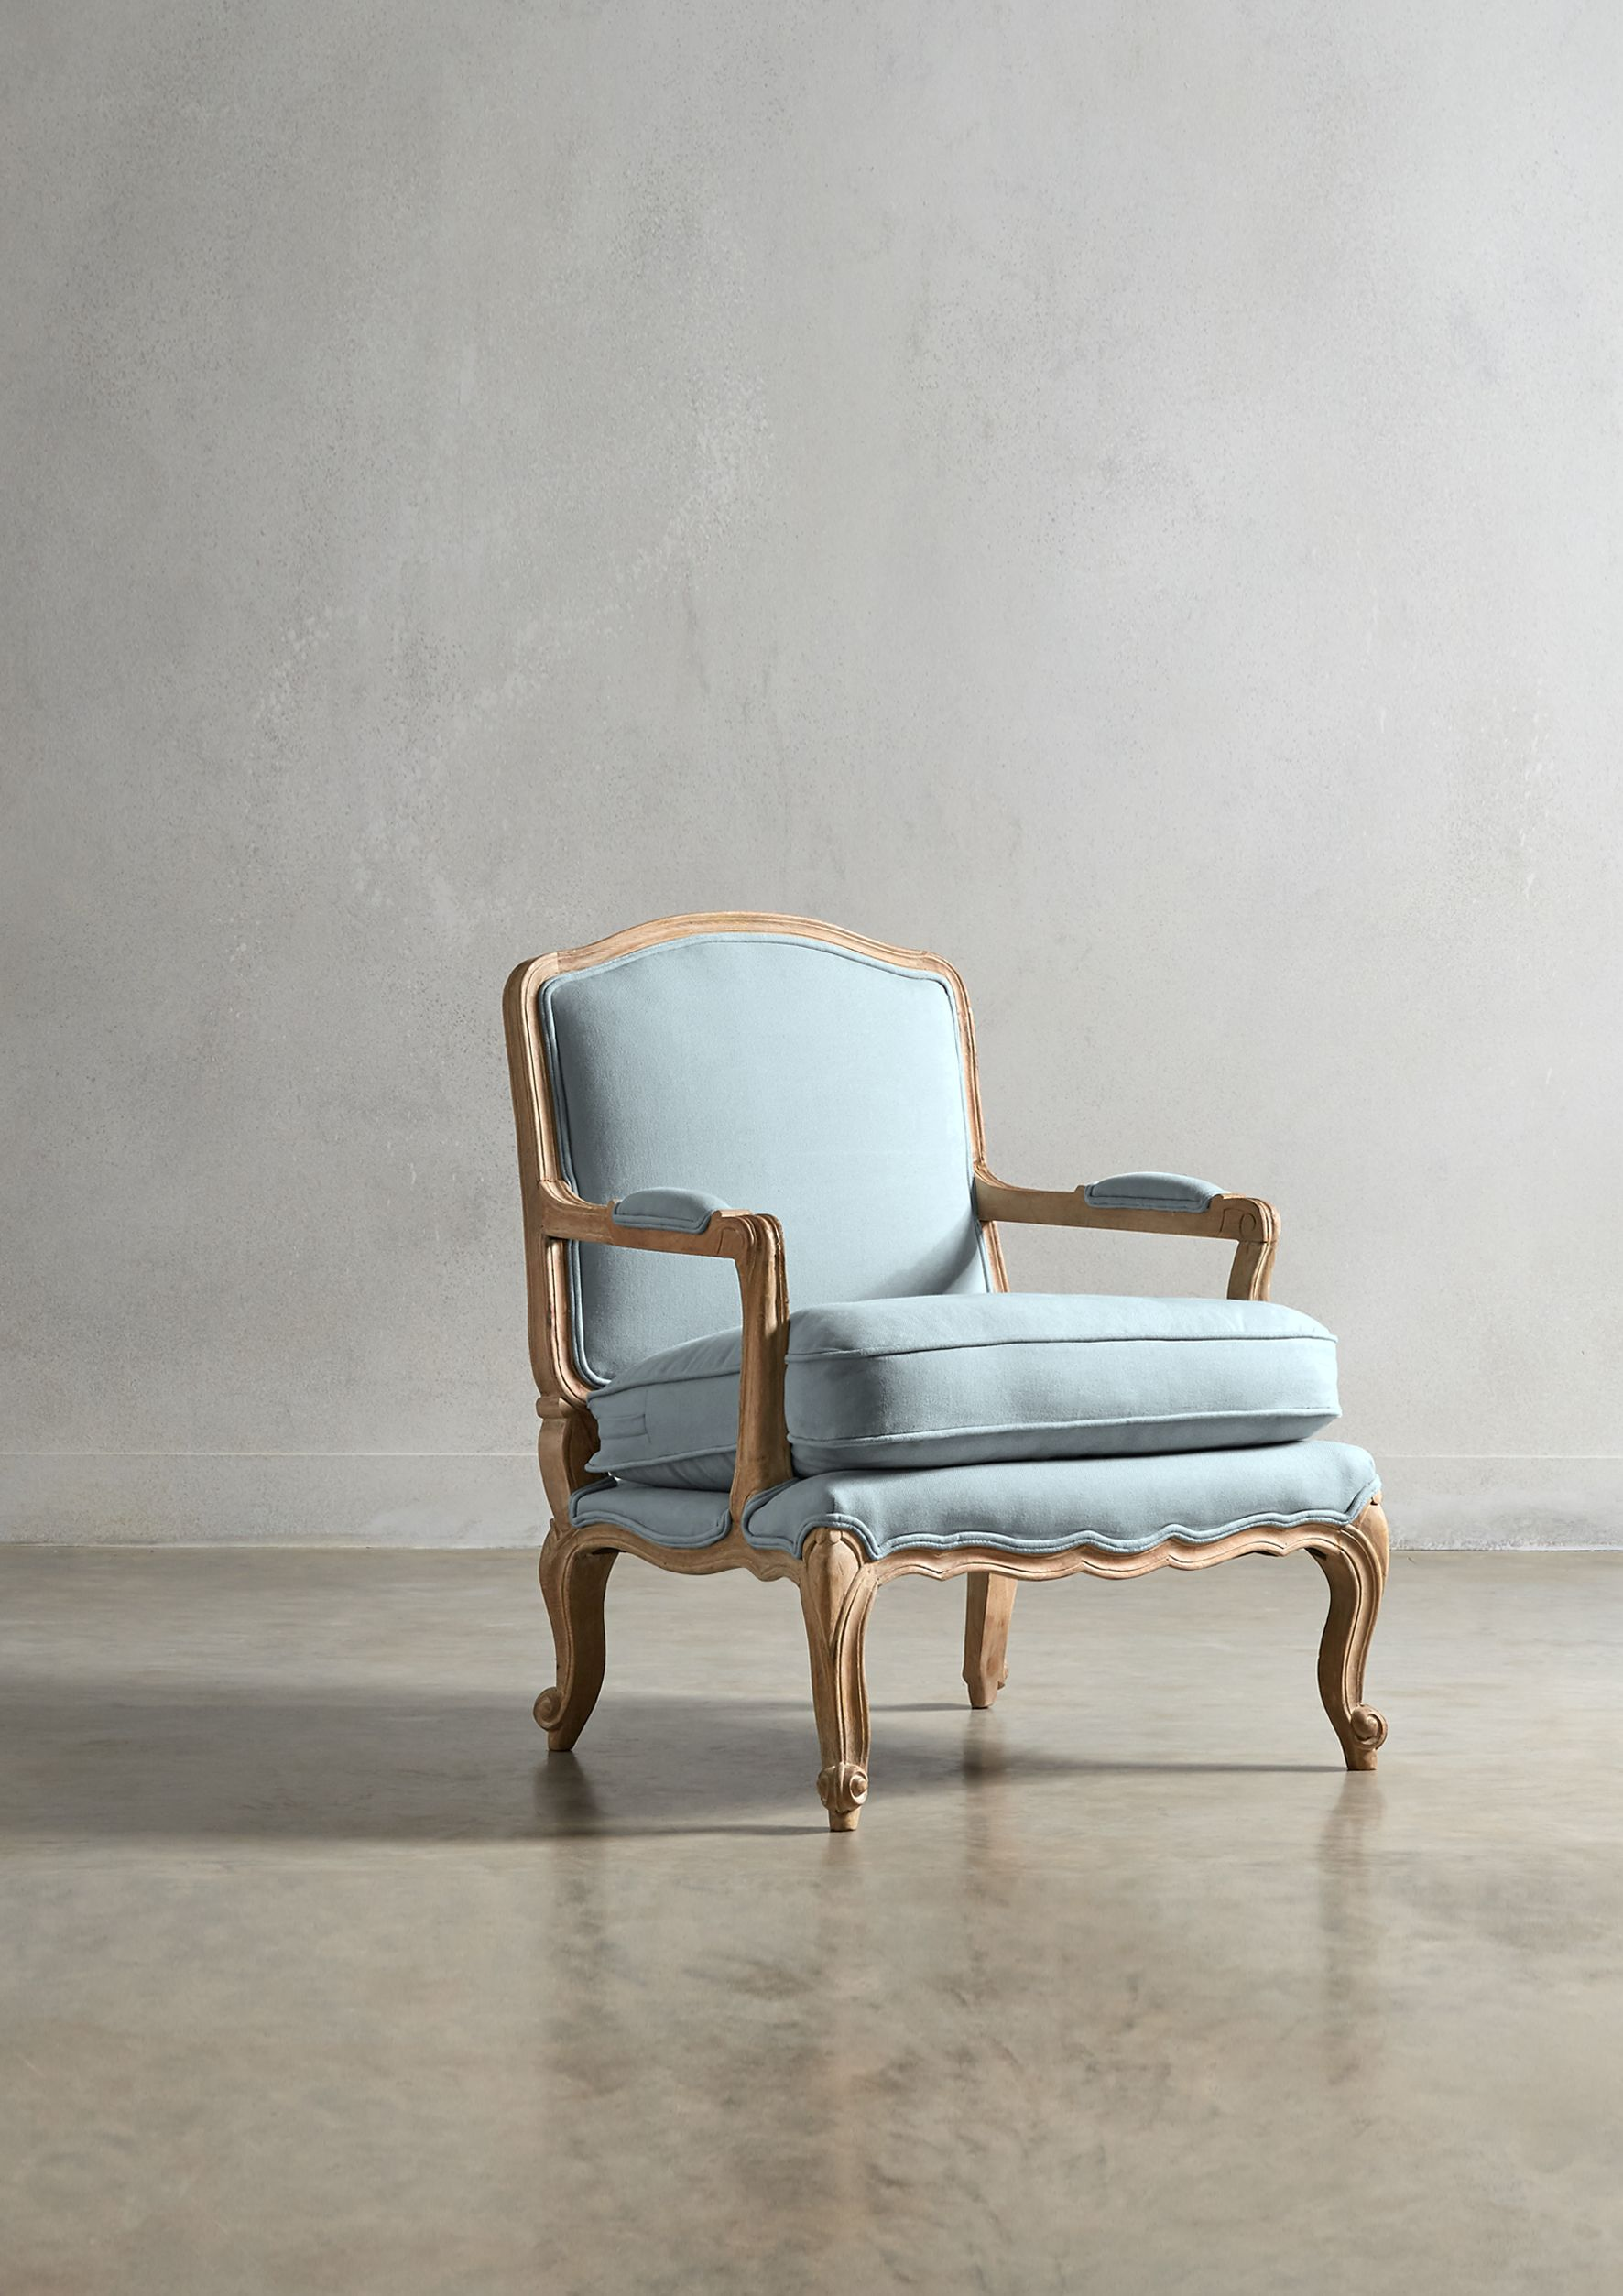 Lille Bedroom Furniture The Lille Armchair In Duck Egg Blue Swoon Editions